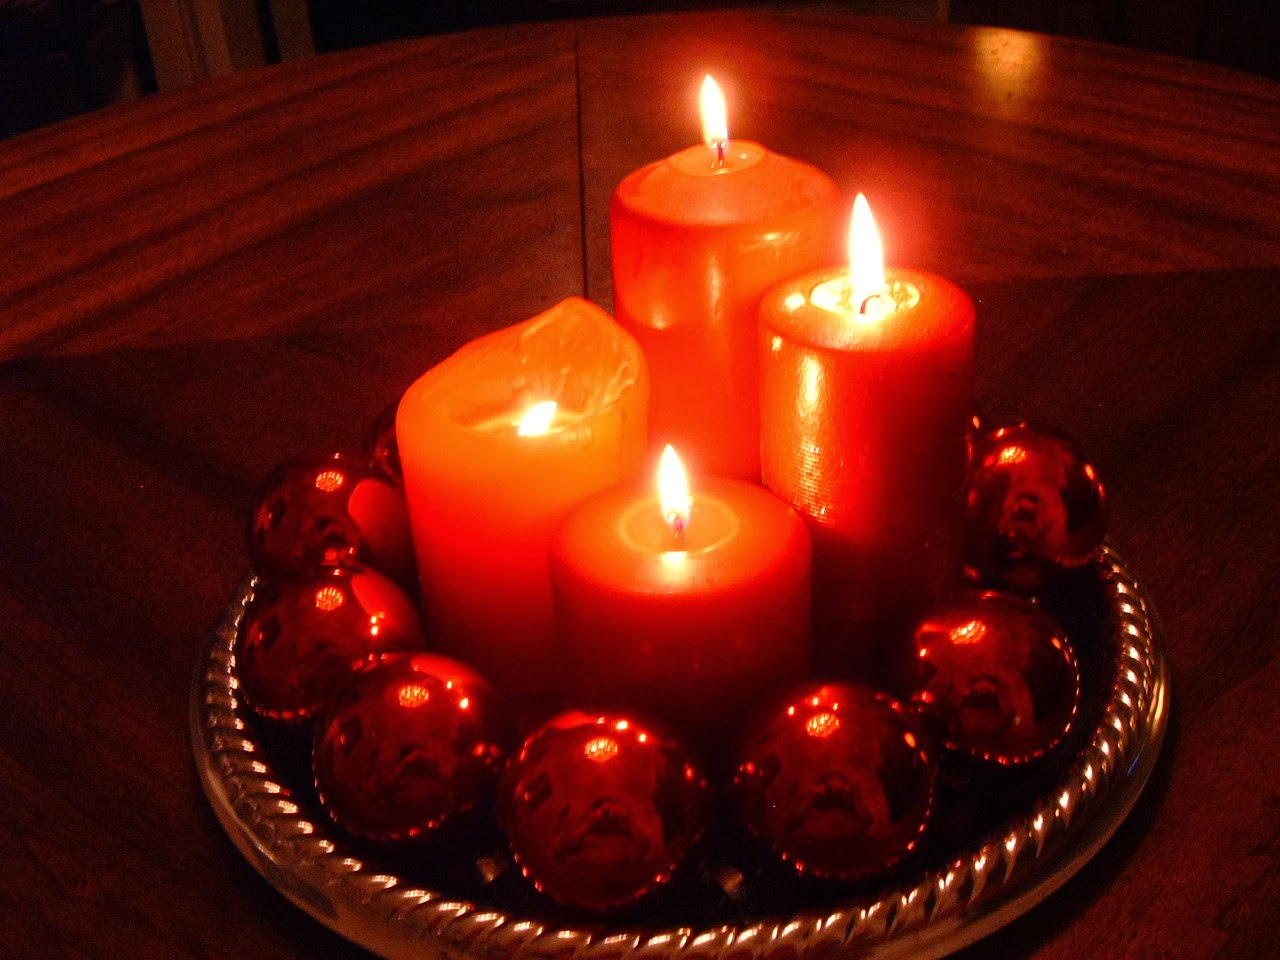 Candles and ornaments hd wallpapers blog for Christmas candles and ornaments